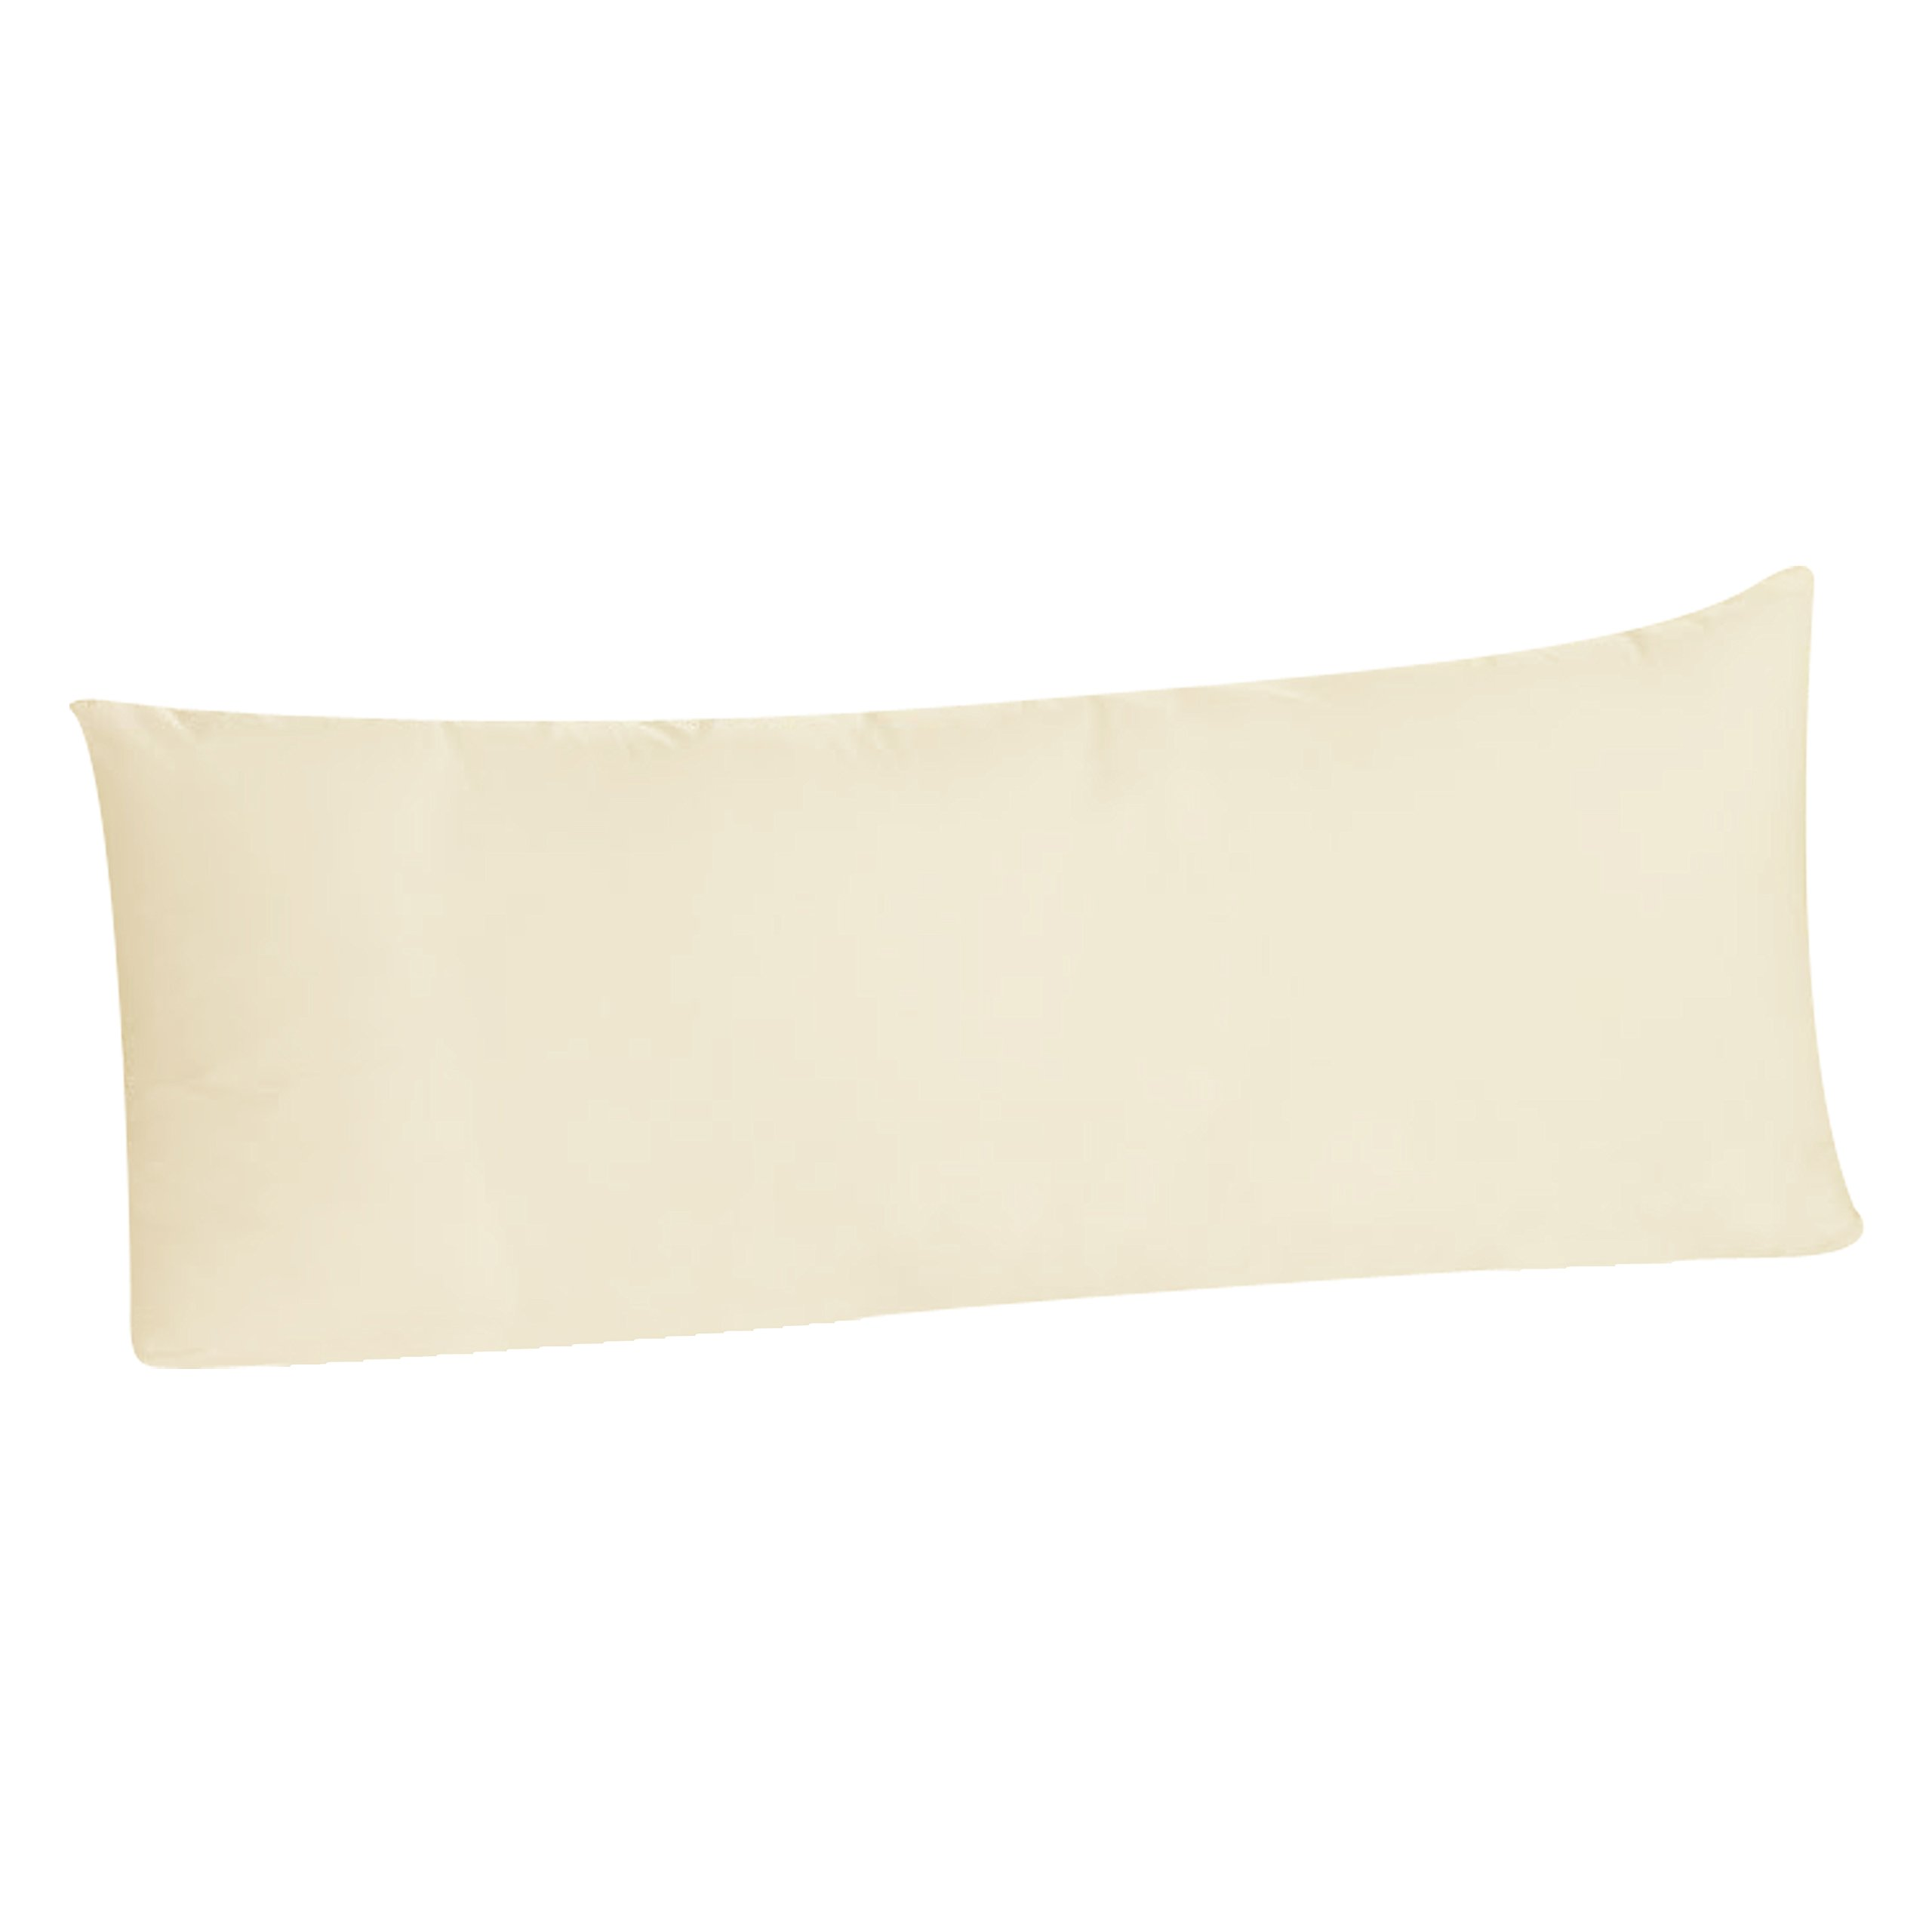 Luxury Egyptian Cotton 300 Thread Count Body Pillowcase - fits 20 x 54 Inch Body Pillow, Envelope Closure (Qty. 1, Ivory)